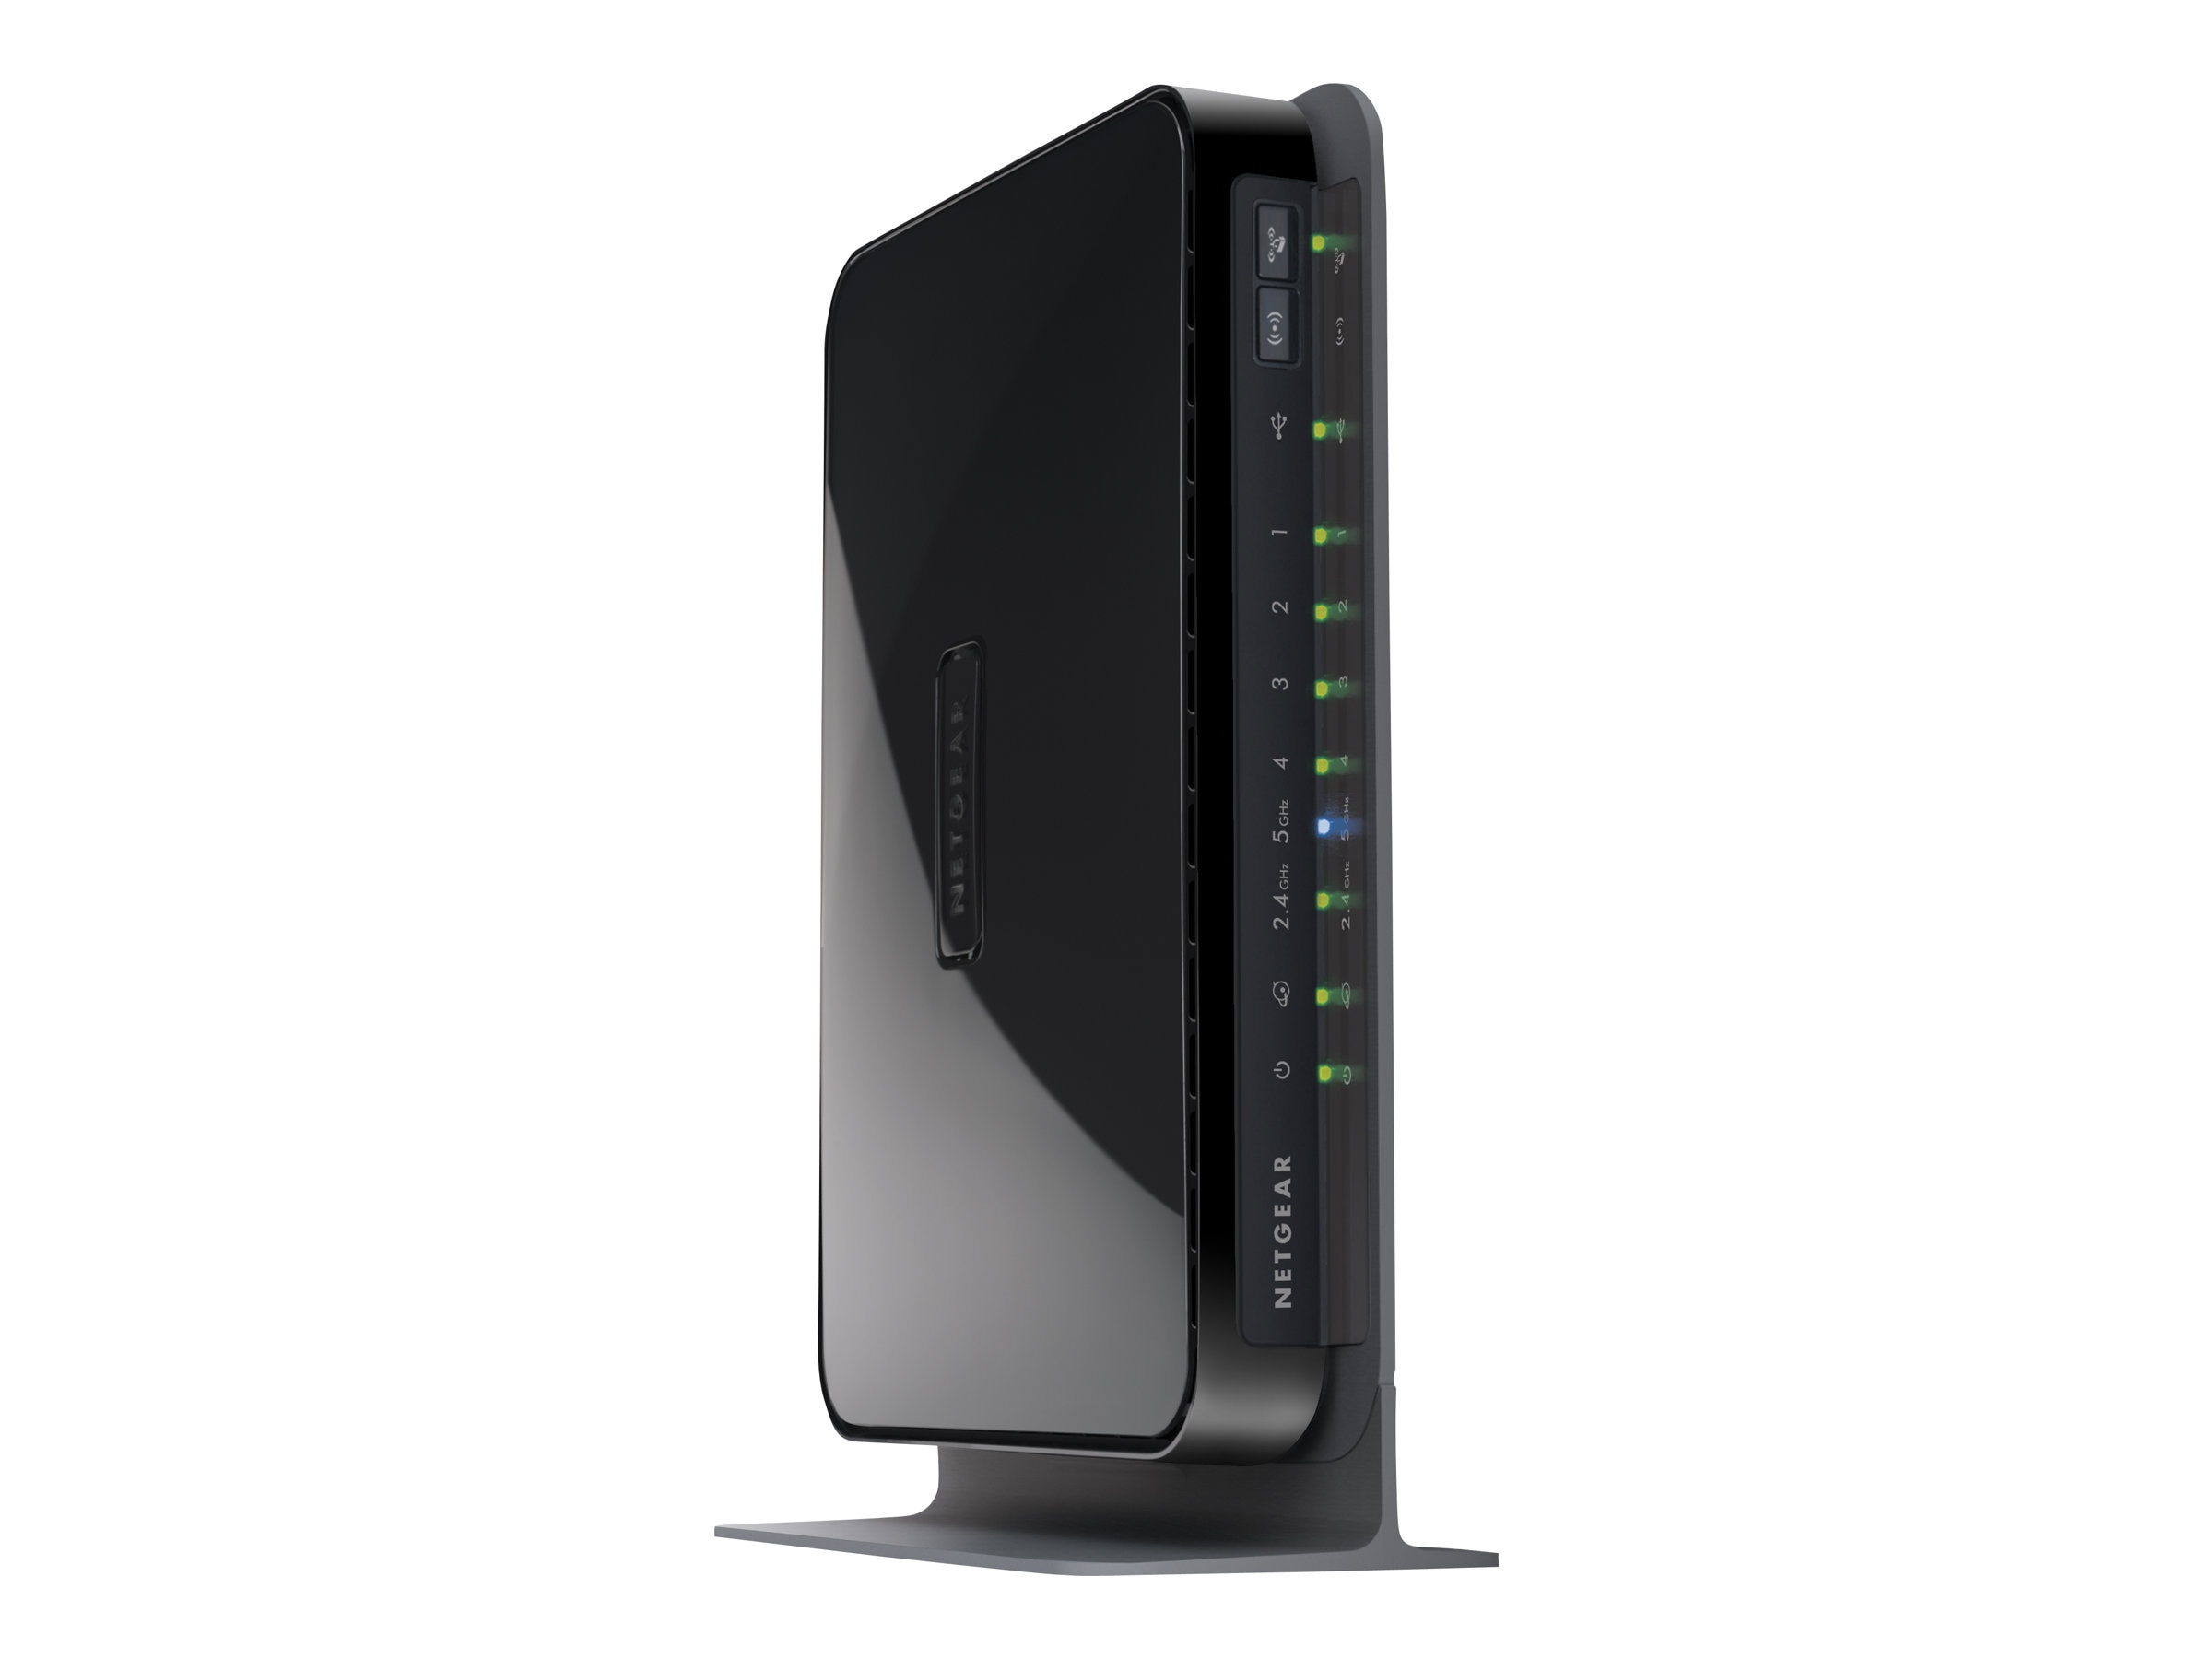 Netgear WNDR3700 11N 2.4GHz GBE 5-port Wireless Router